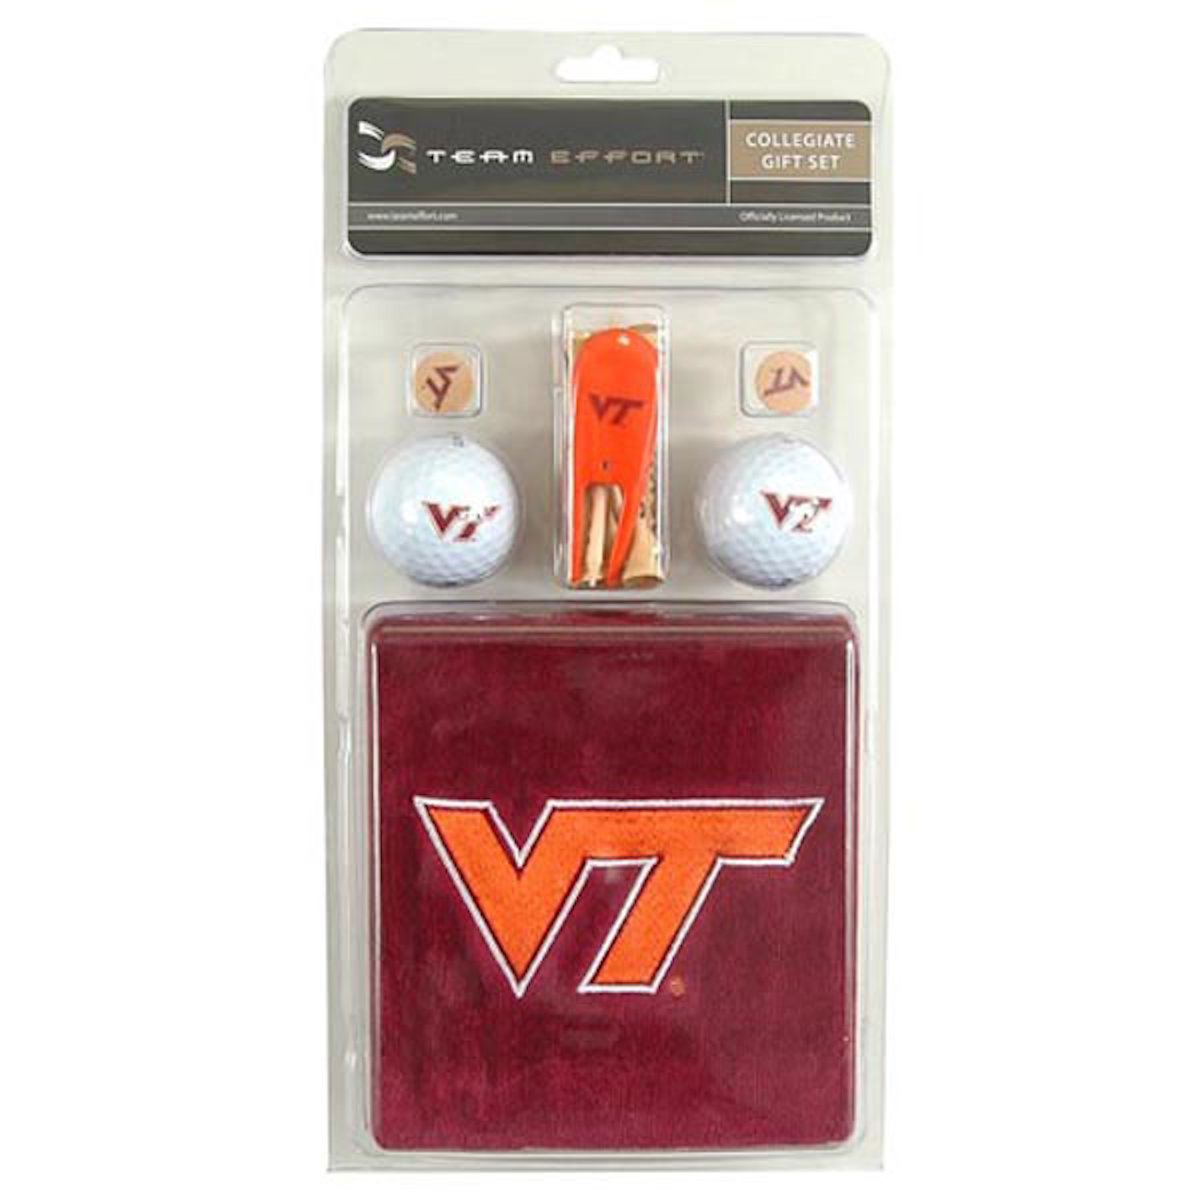 Virginia Tech Hokies Collegiate Golf Gift Set